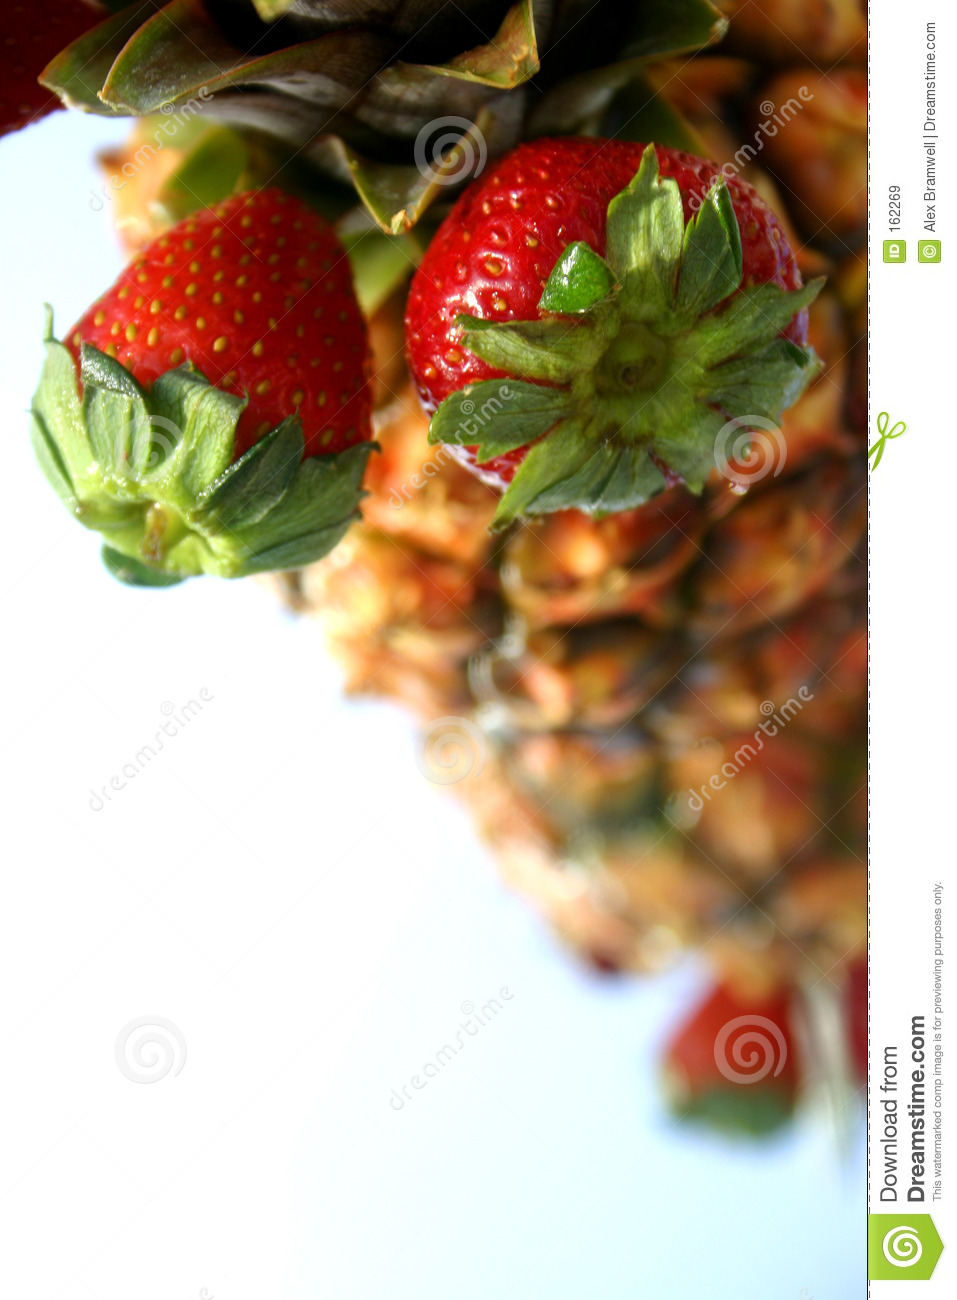 Pineapple Strawberry Display